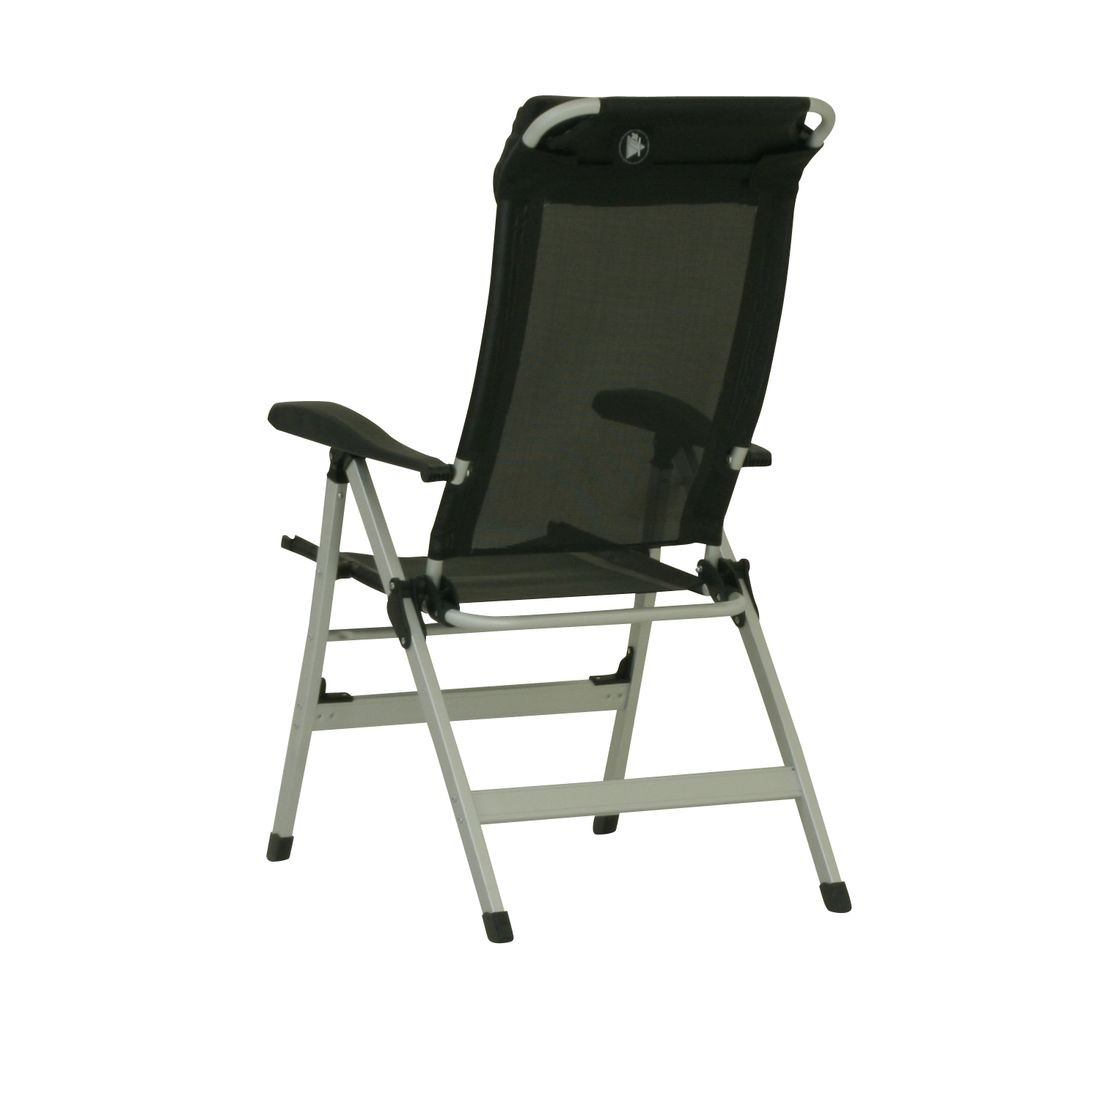 easy chairs with integral footrest folding chair wholesale 10t easychair aluminium camping high back incl